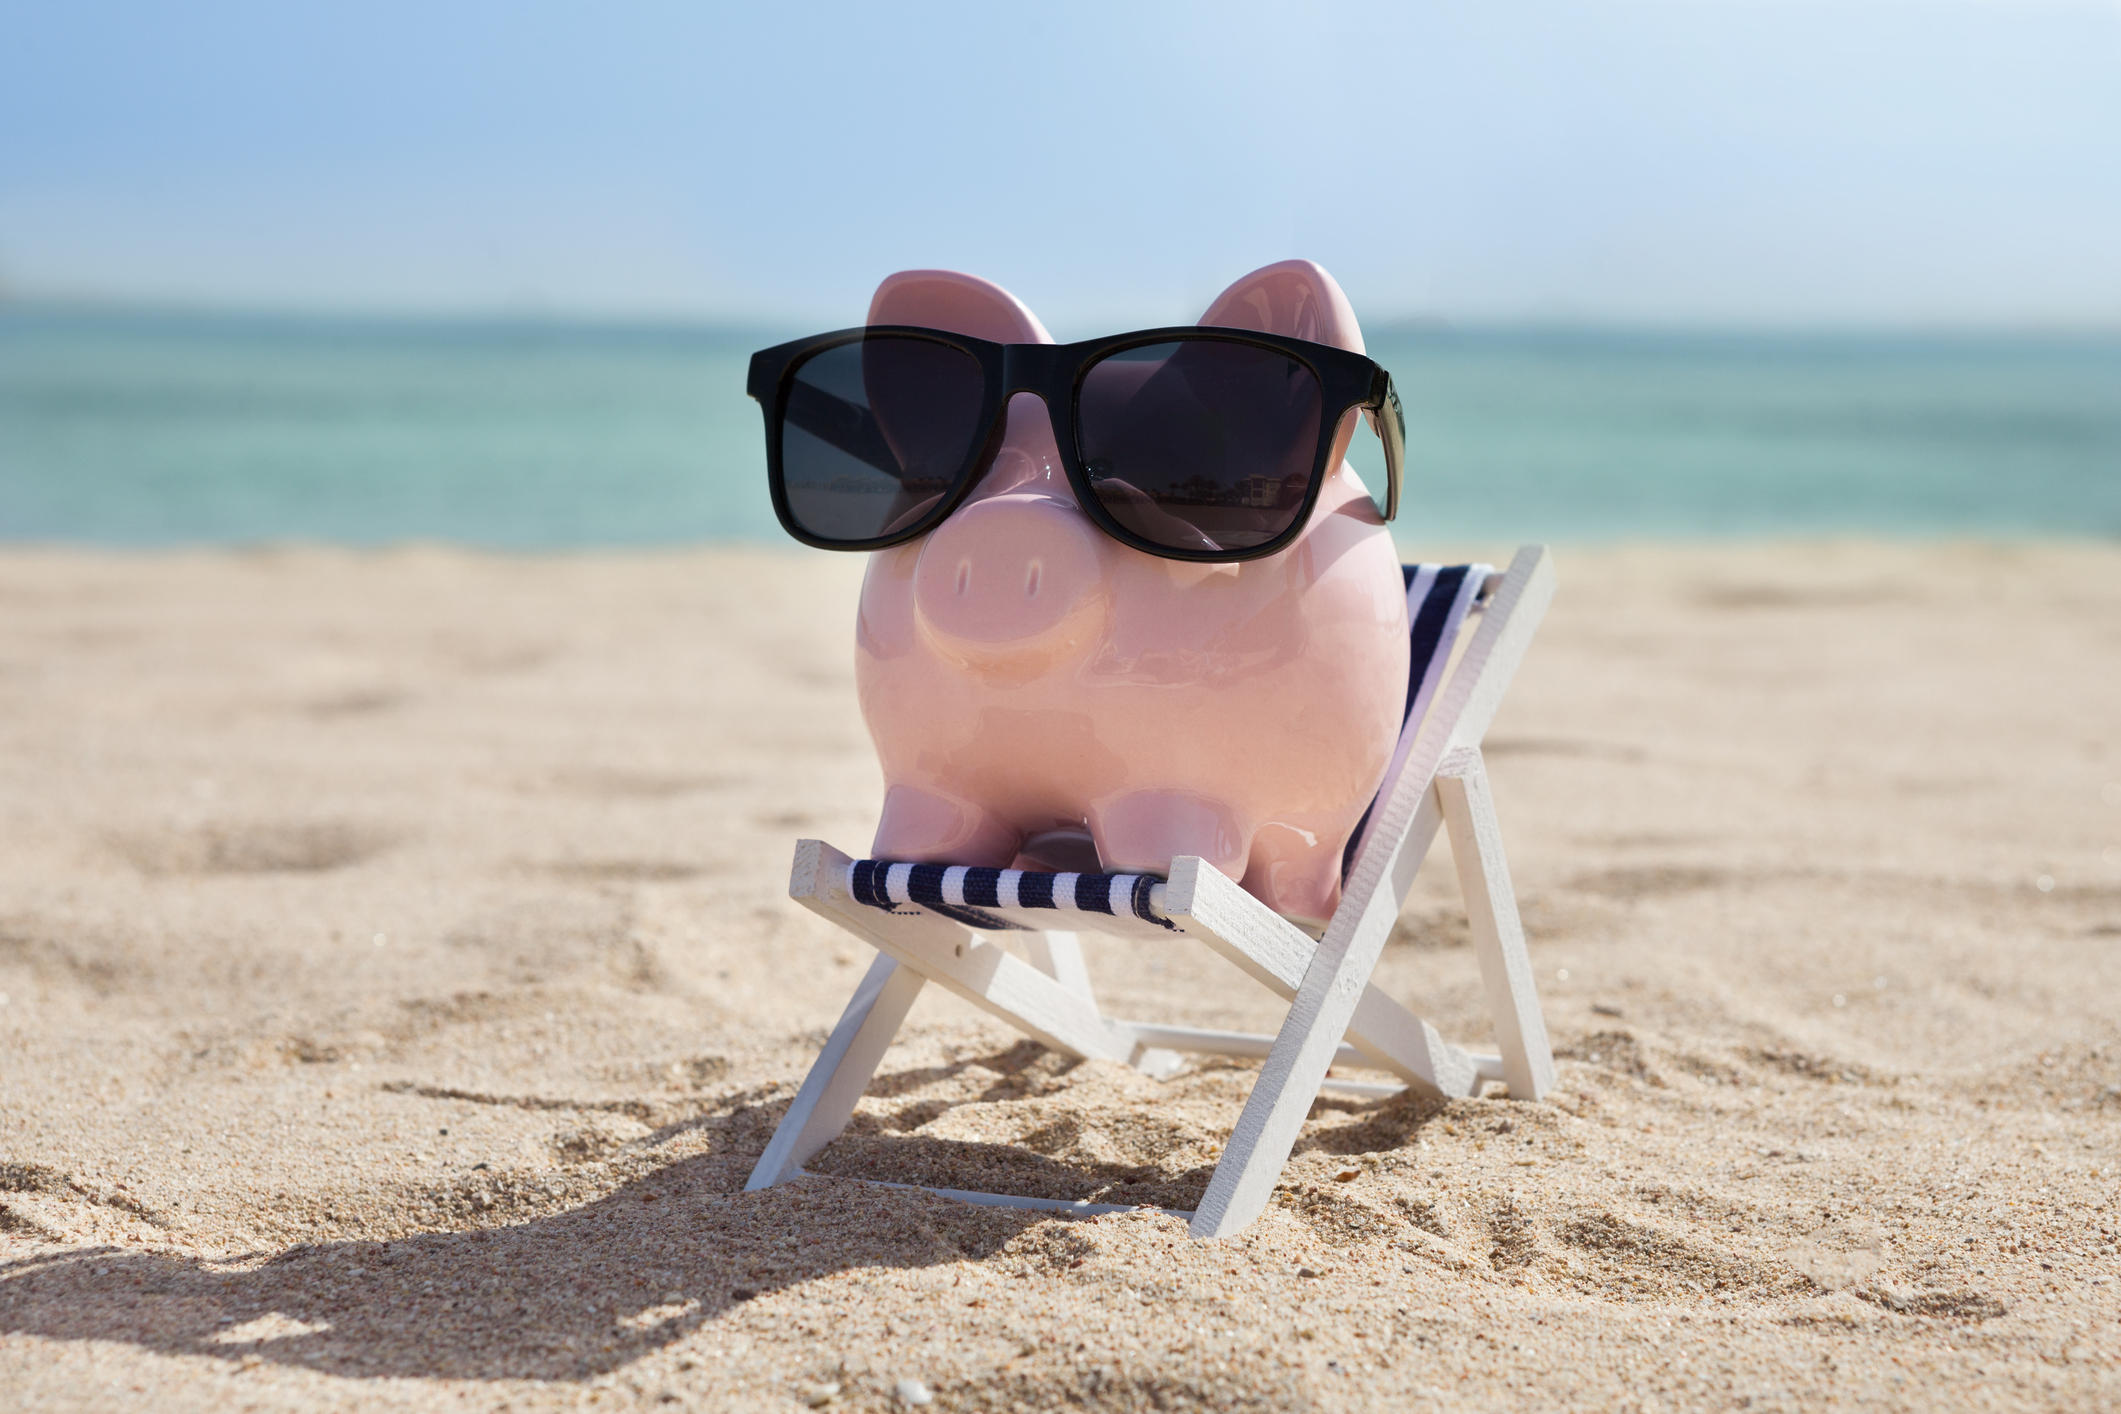 piggy bank on a beach